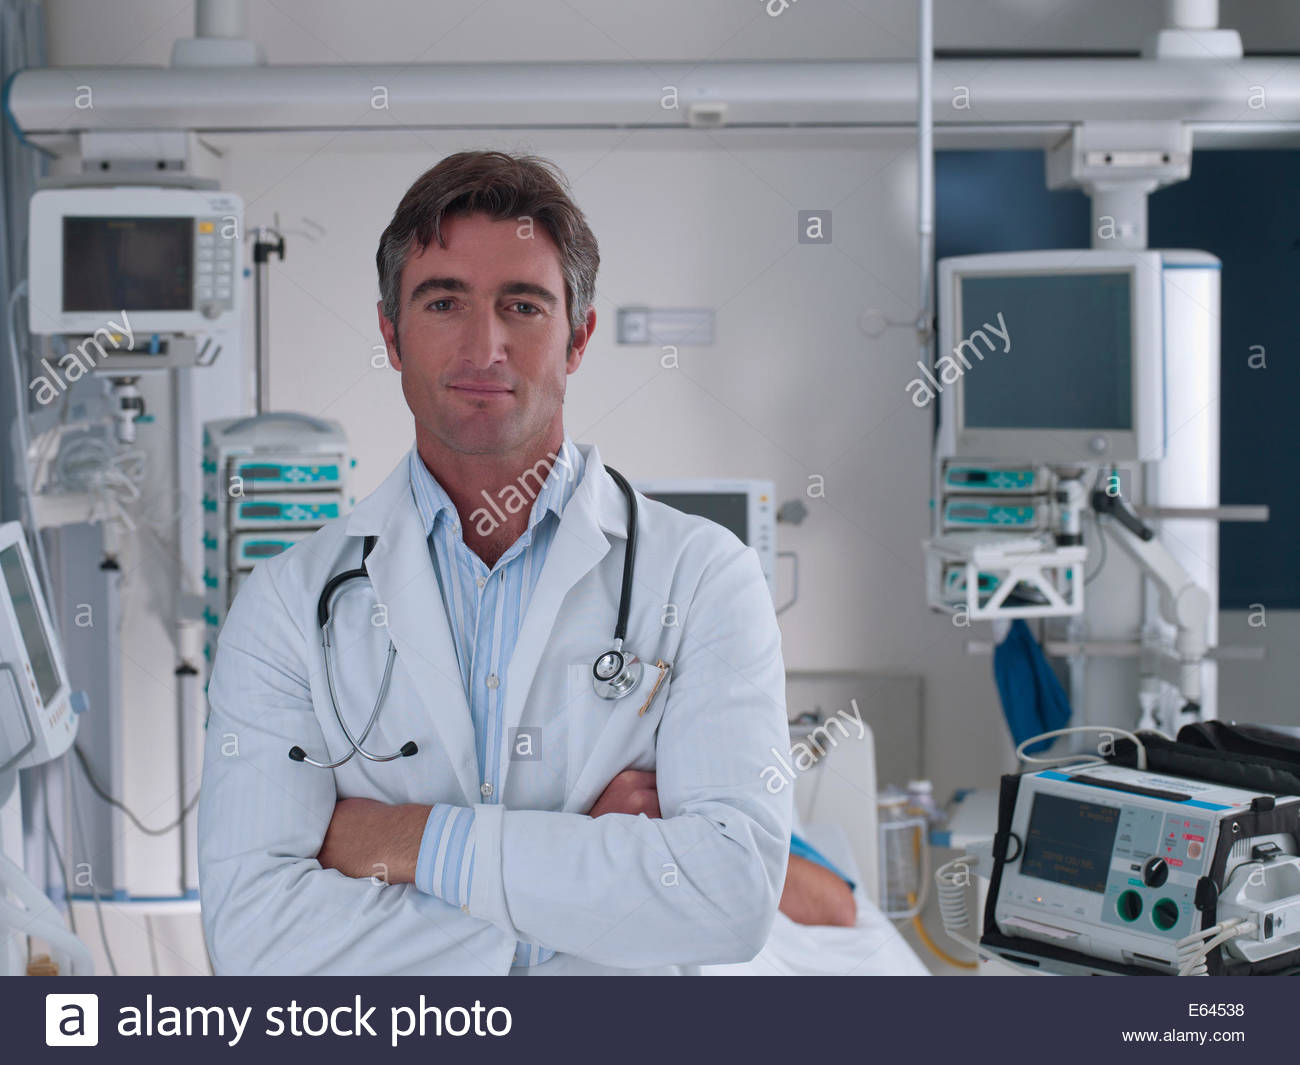 Doctor standing in hospital intensive care with arm closed - Stock Image